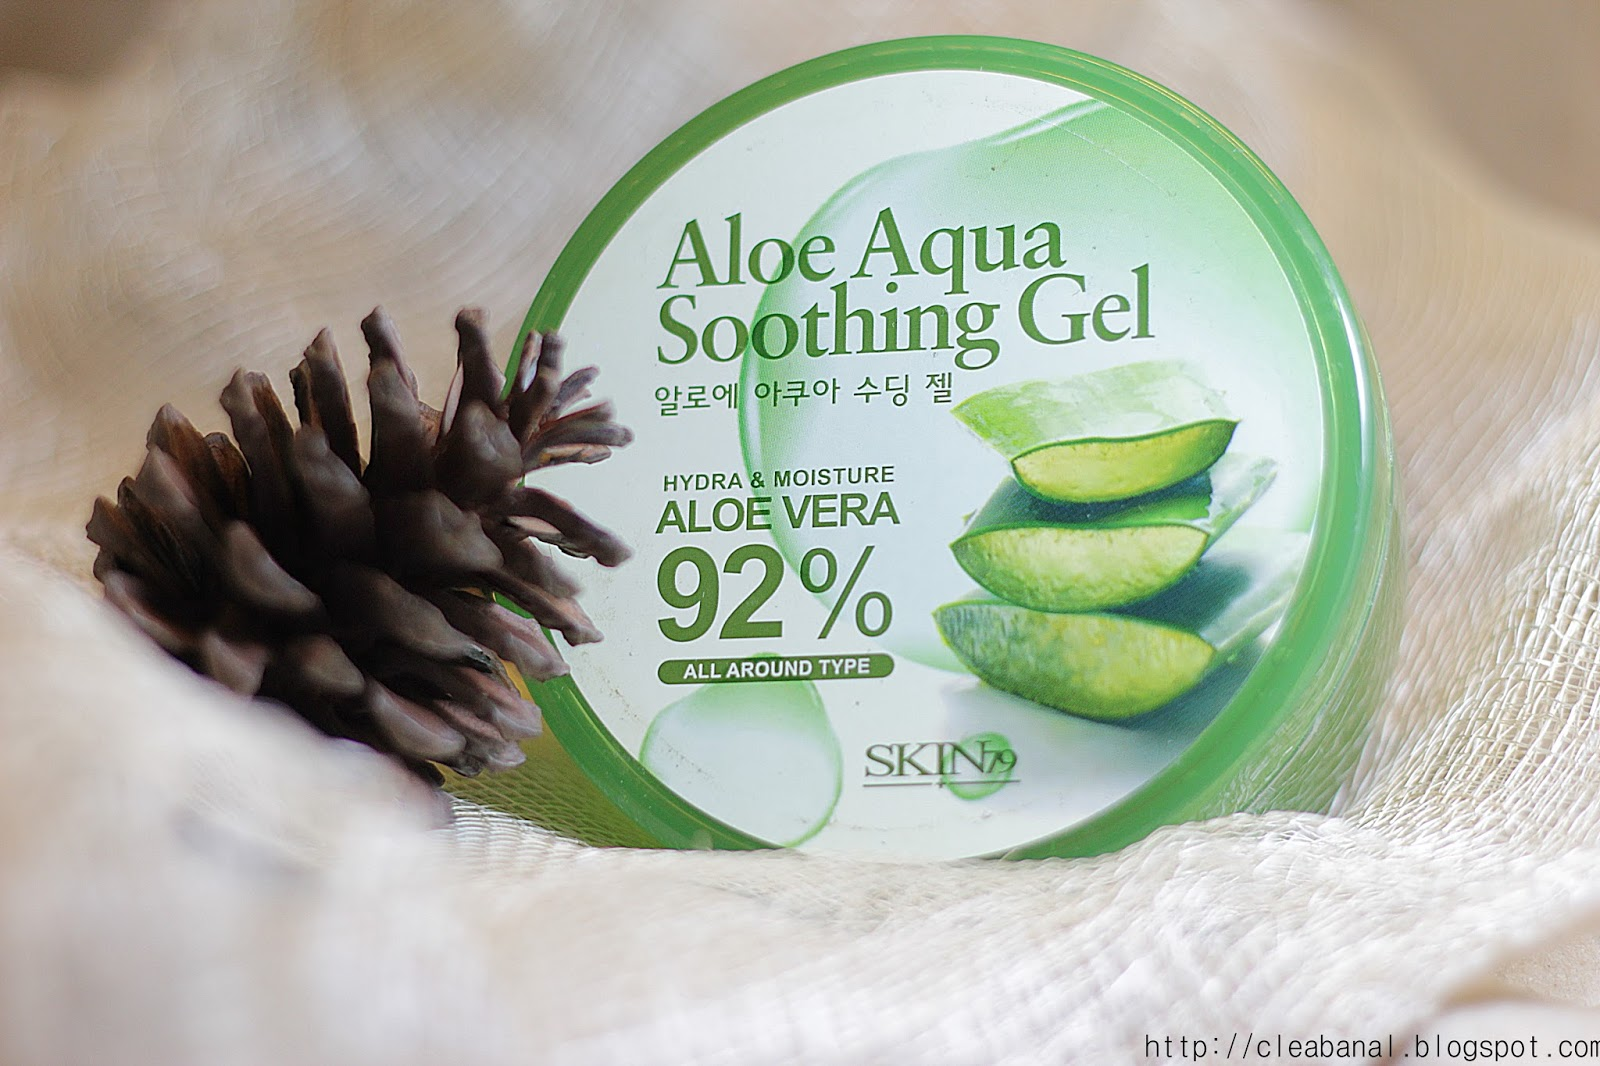 Skin79 : Aloe Aqua Soothing Gel Review